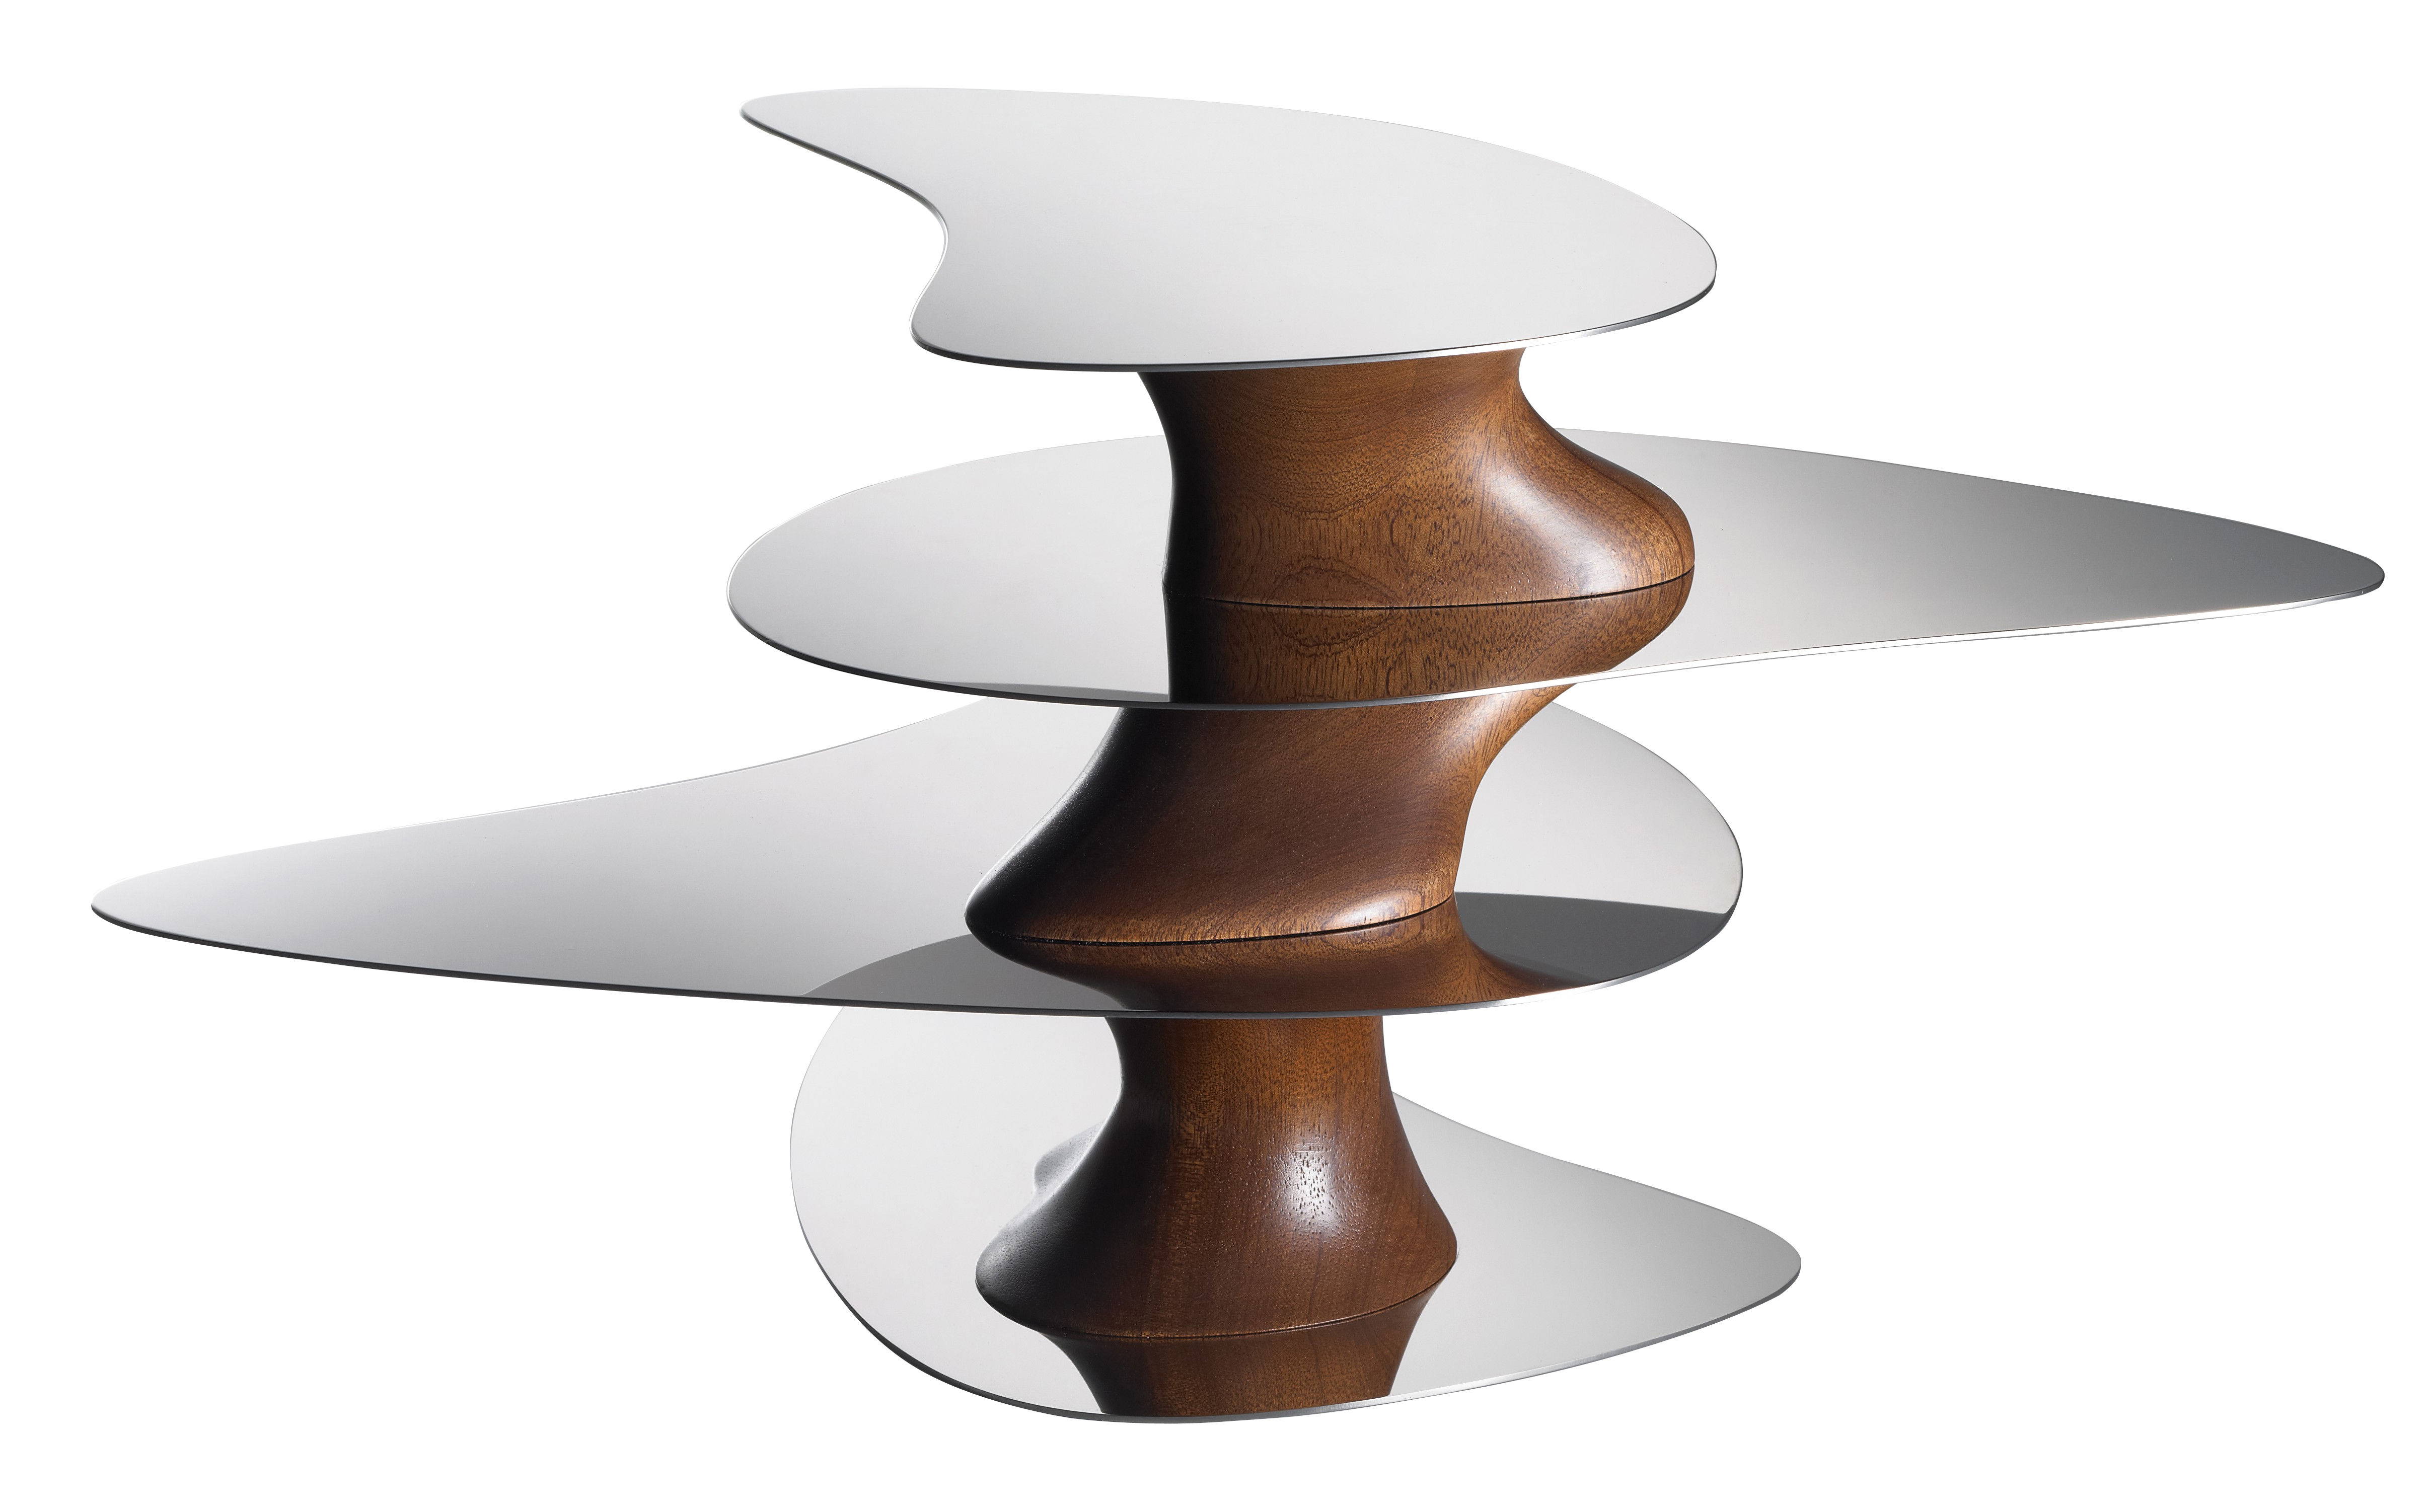 Arts de la table - Plats - Plateau Floating Earth / Centre de table - H 22 cm - Alessi - Acier brillant & bois - Acier inoxydable poli